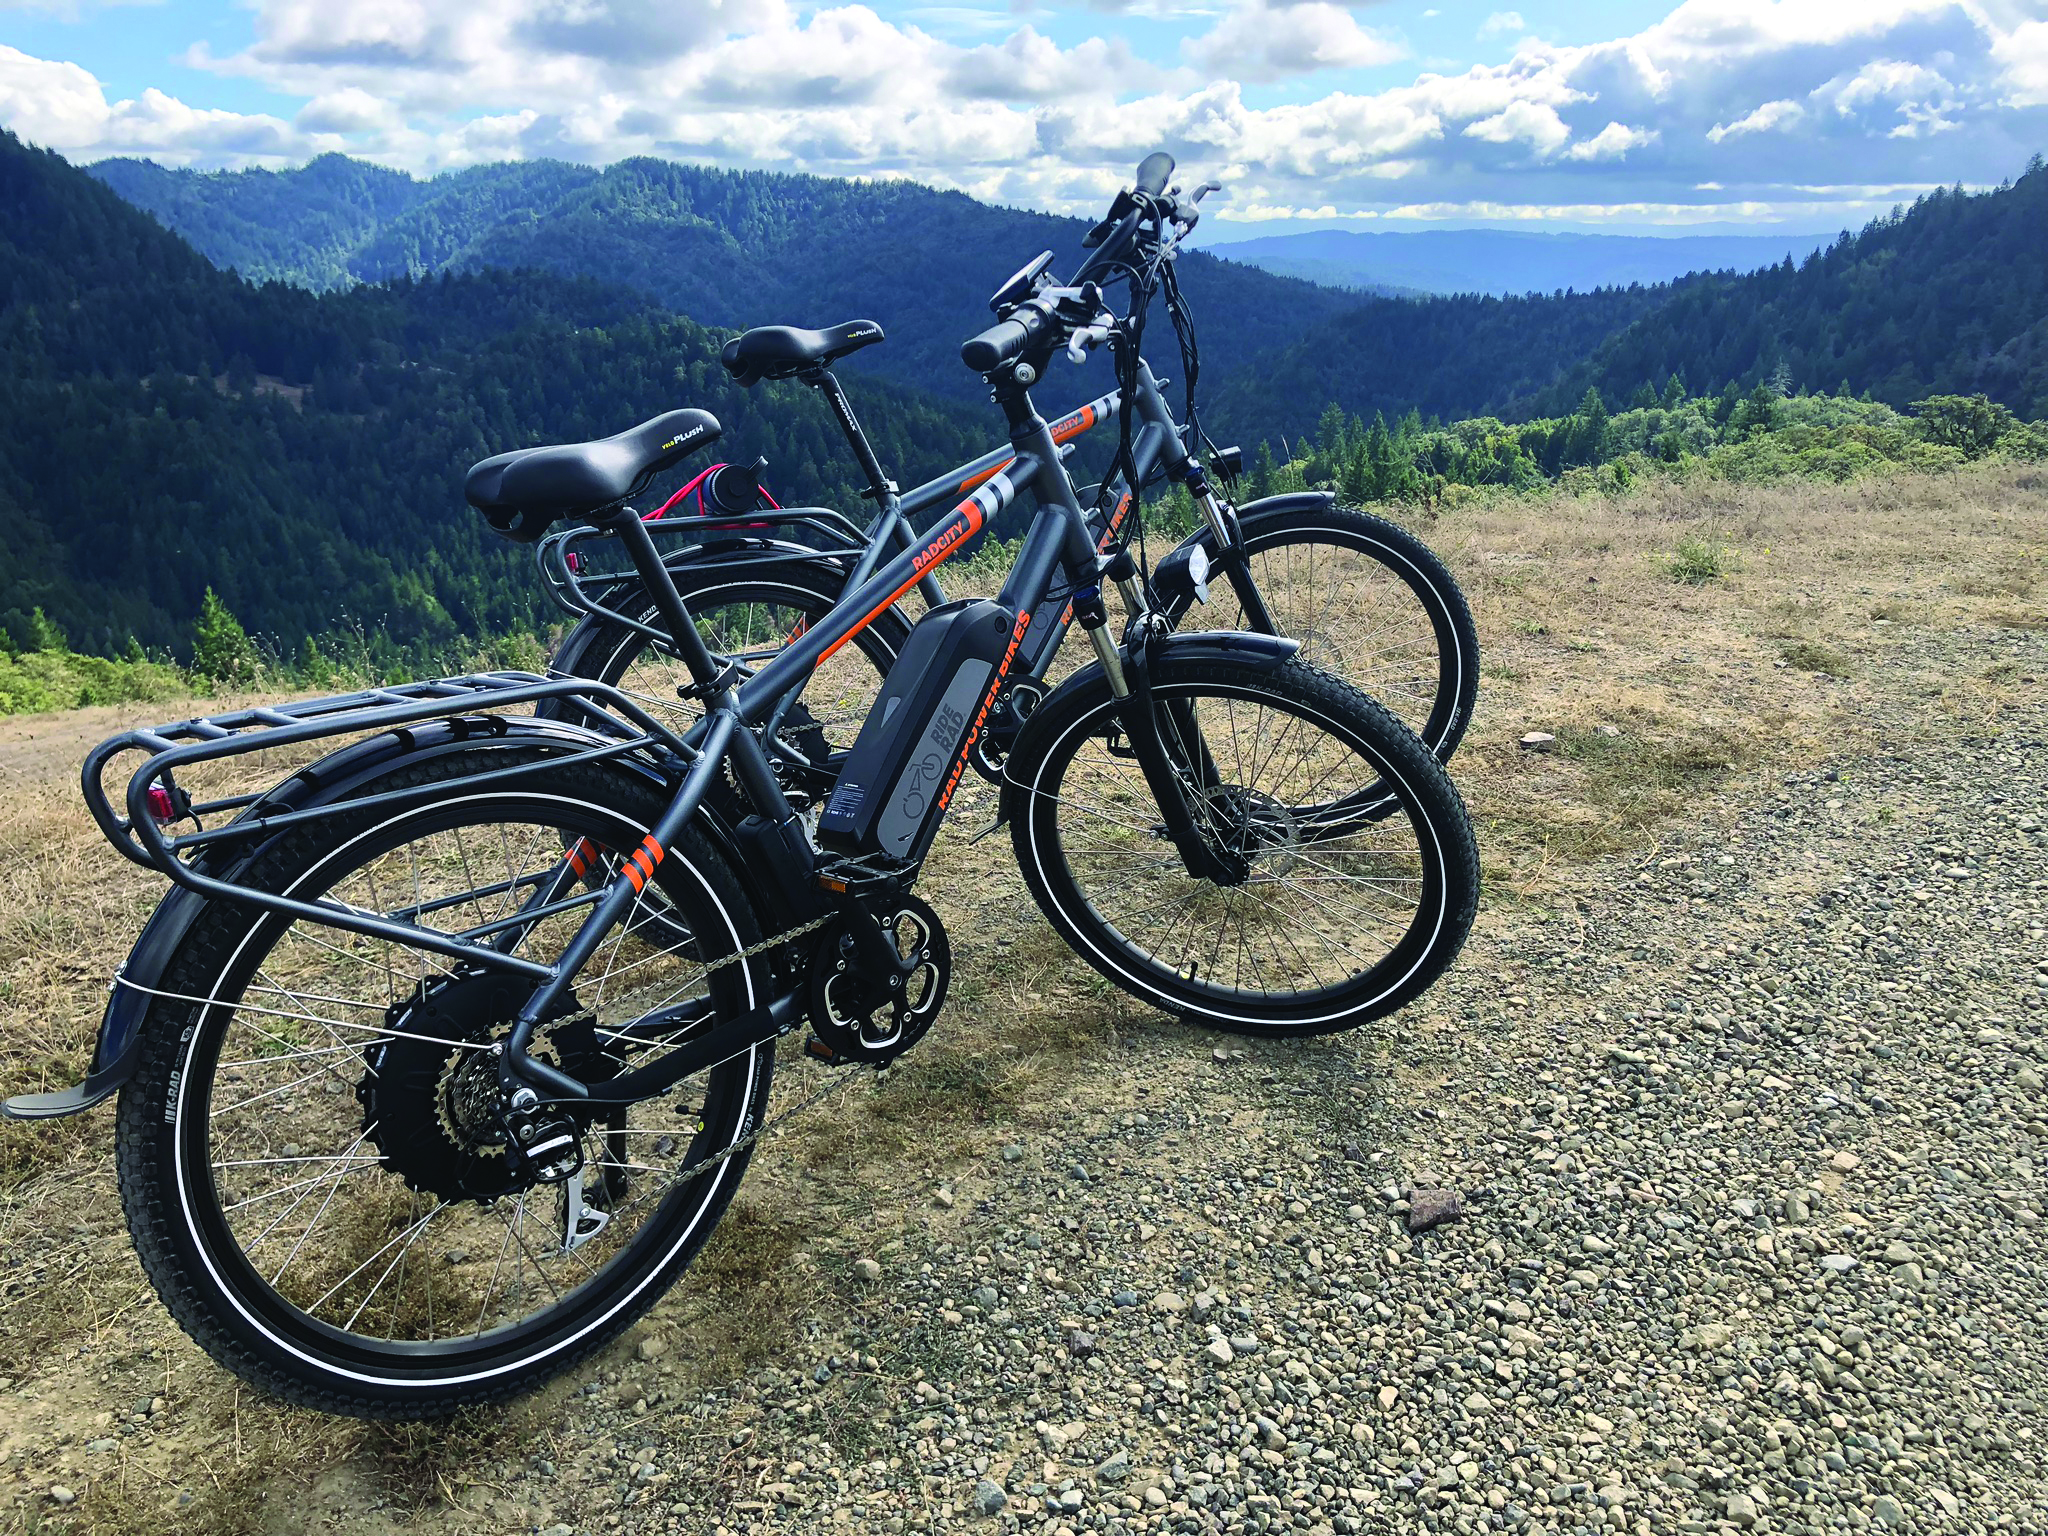 Two electric bikes parked on the side of the road in Kneeland overlooking the mountain side